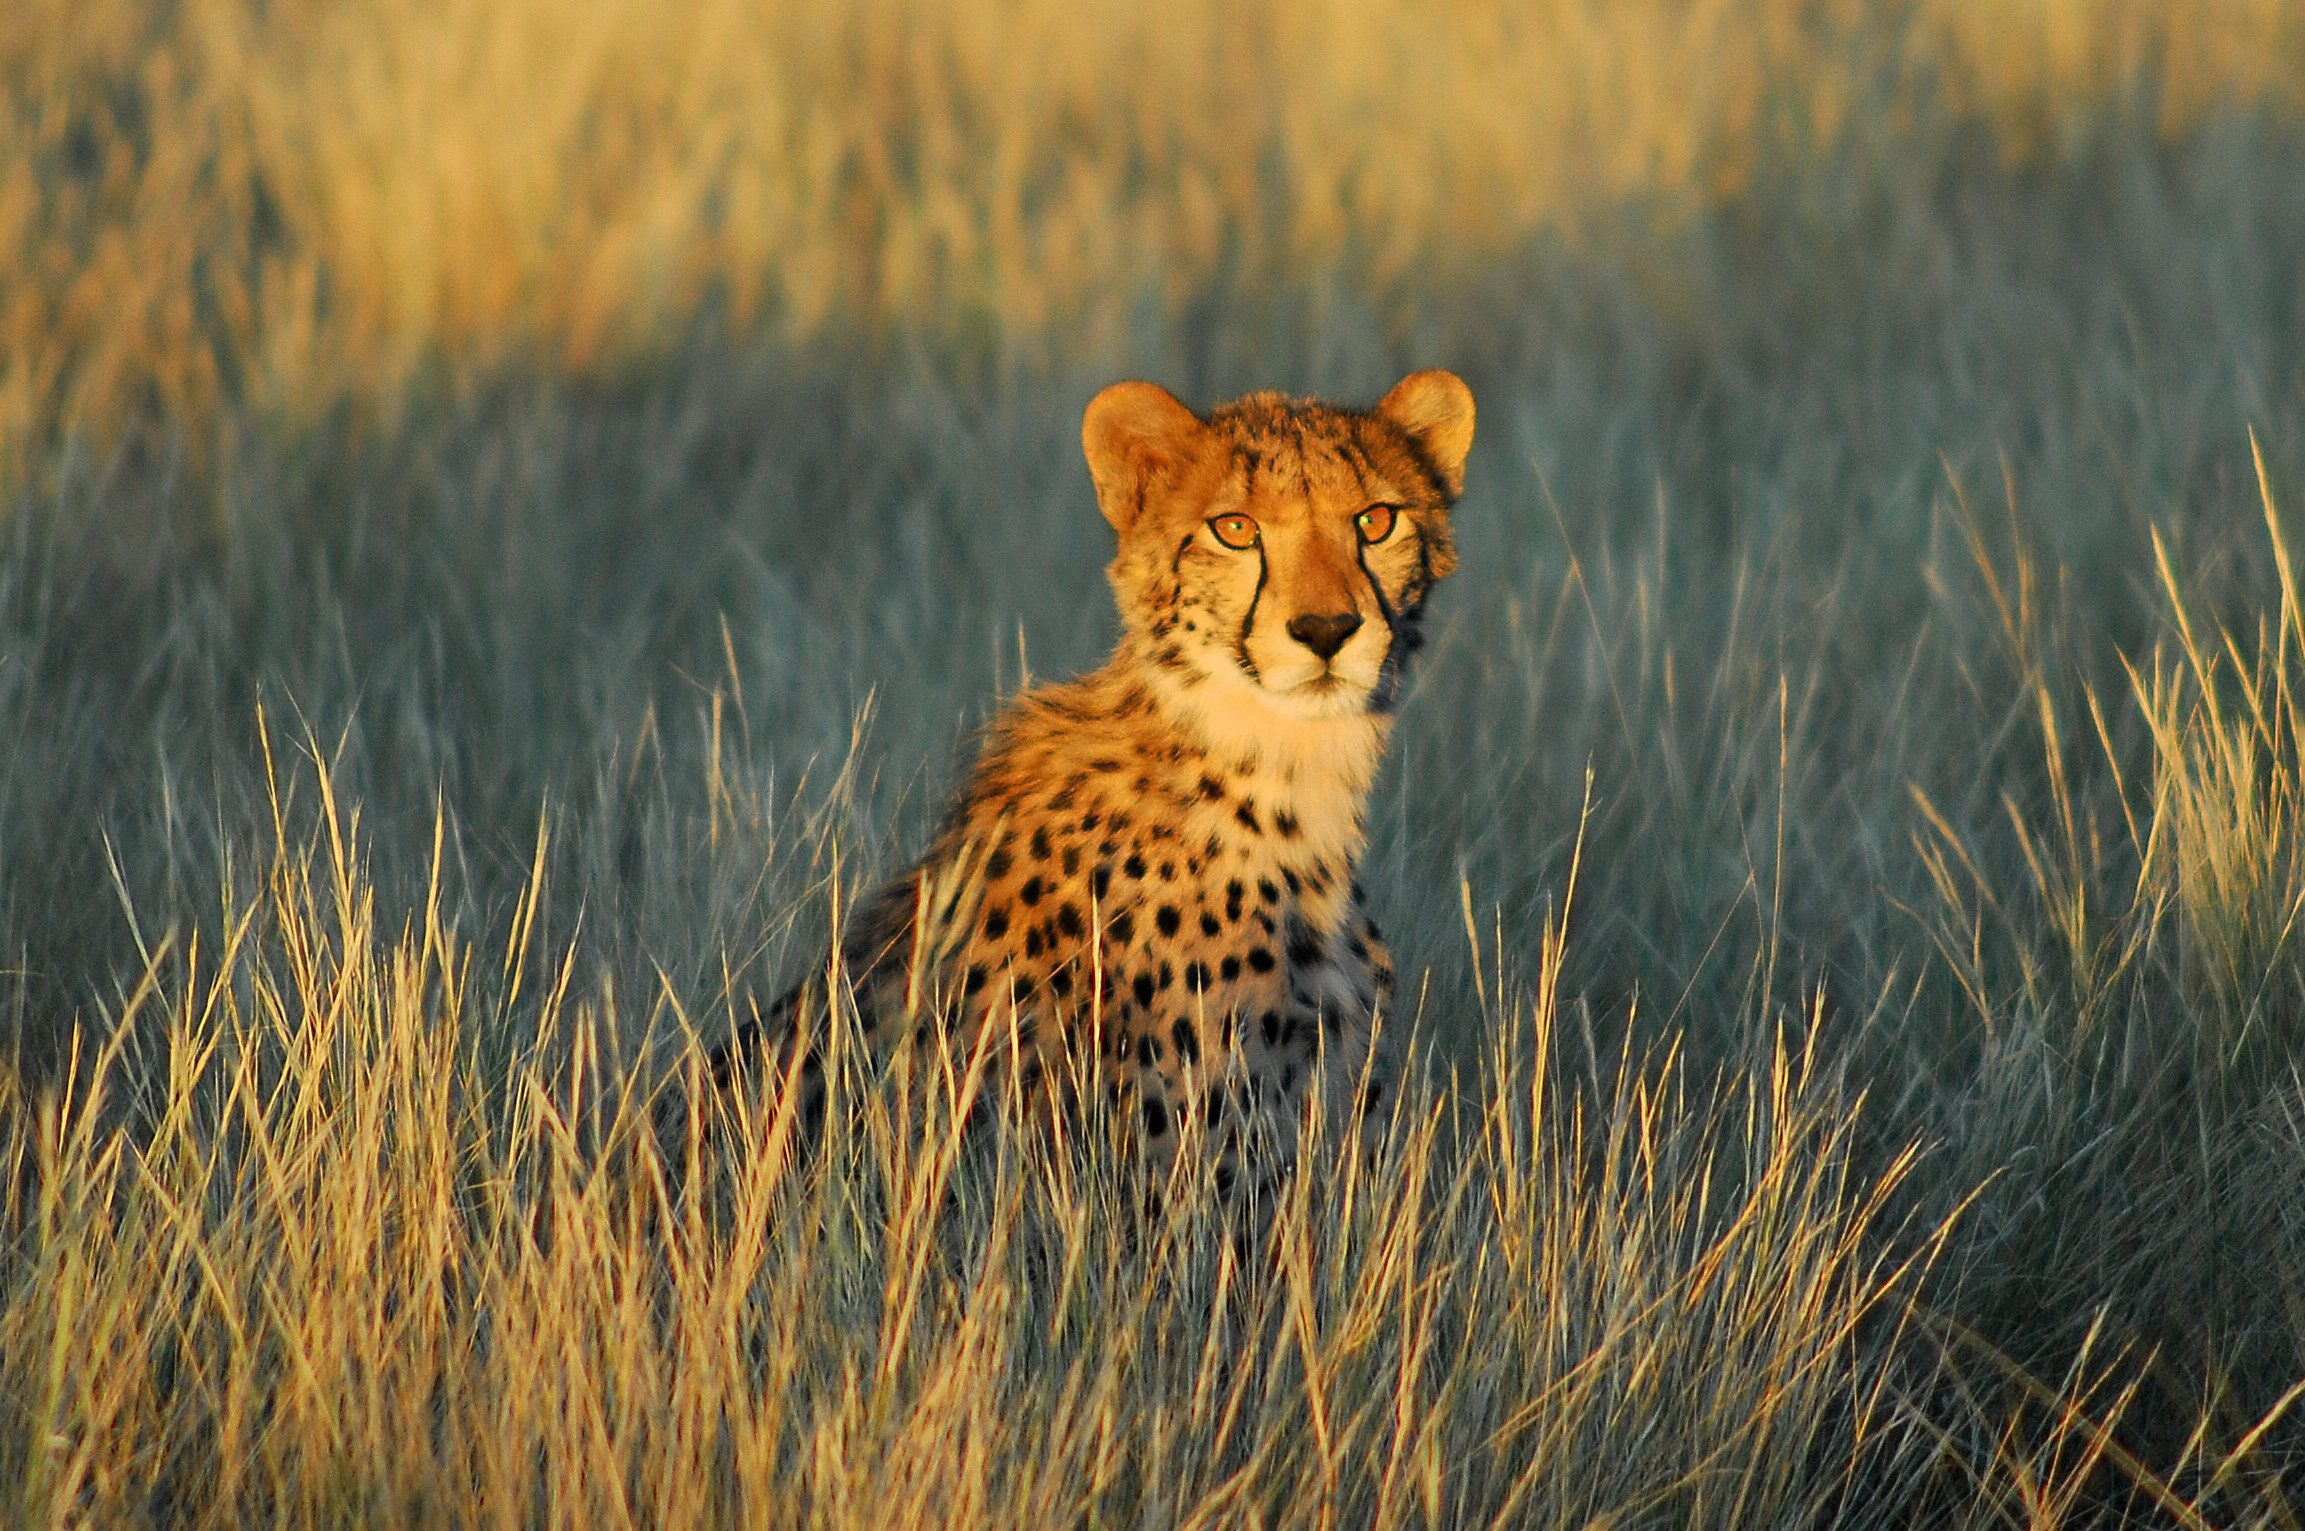 cheetah stares out into the distance among the tall golden grass with the shadow of the sun setting behind him